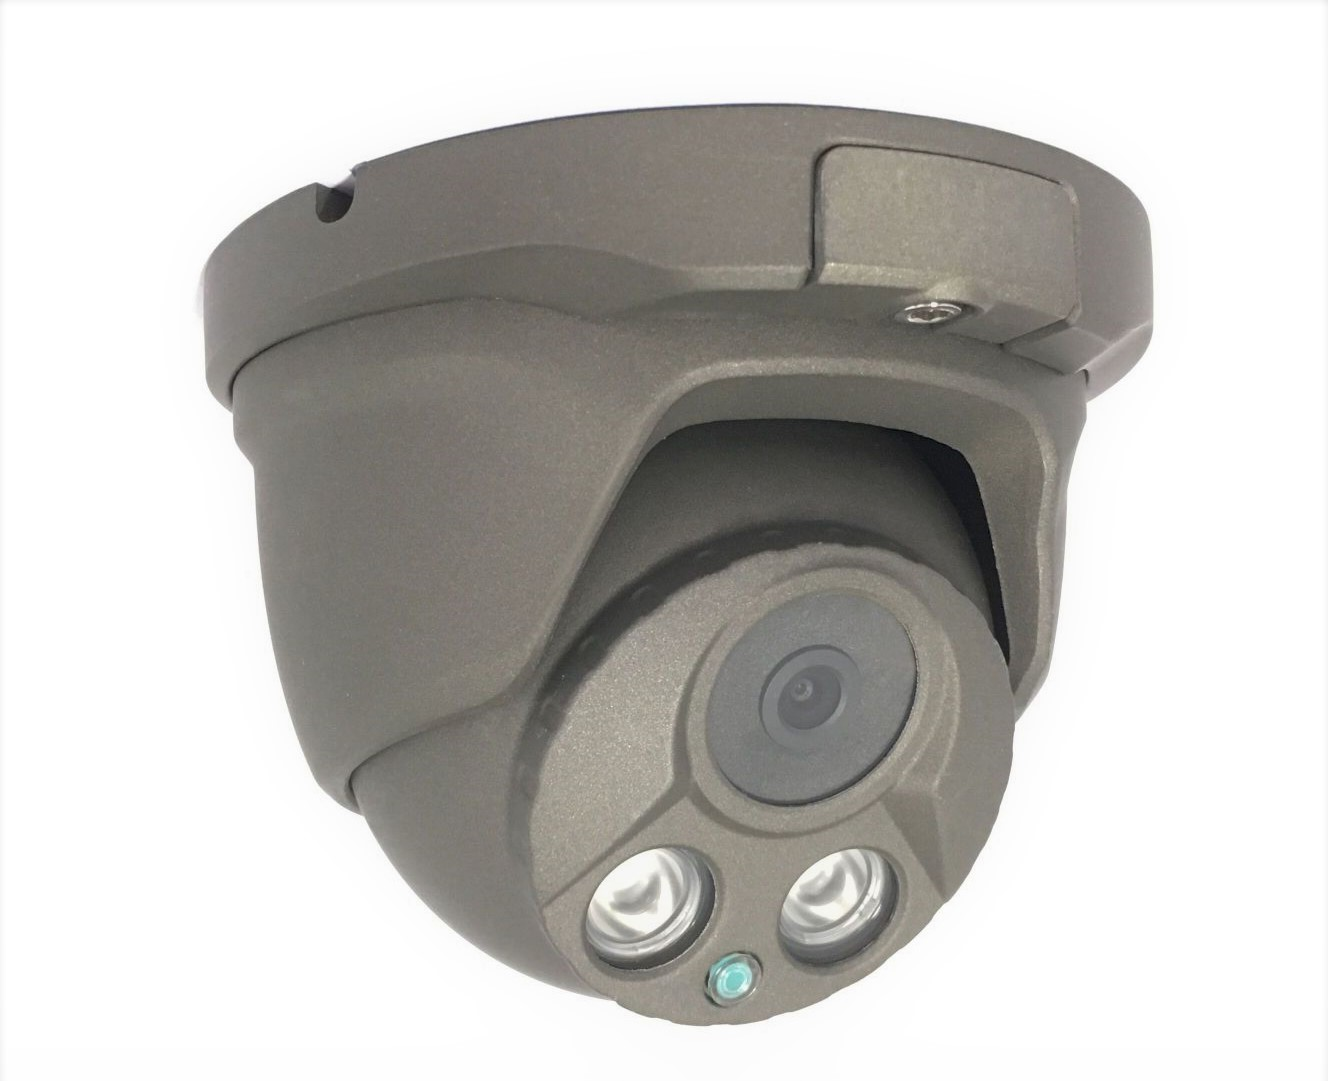 LUX PRO FIXED 2.8MM, 2 ARRAY, 2MP,TVI GREY (LP-E2M-FMARG2)